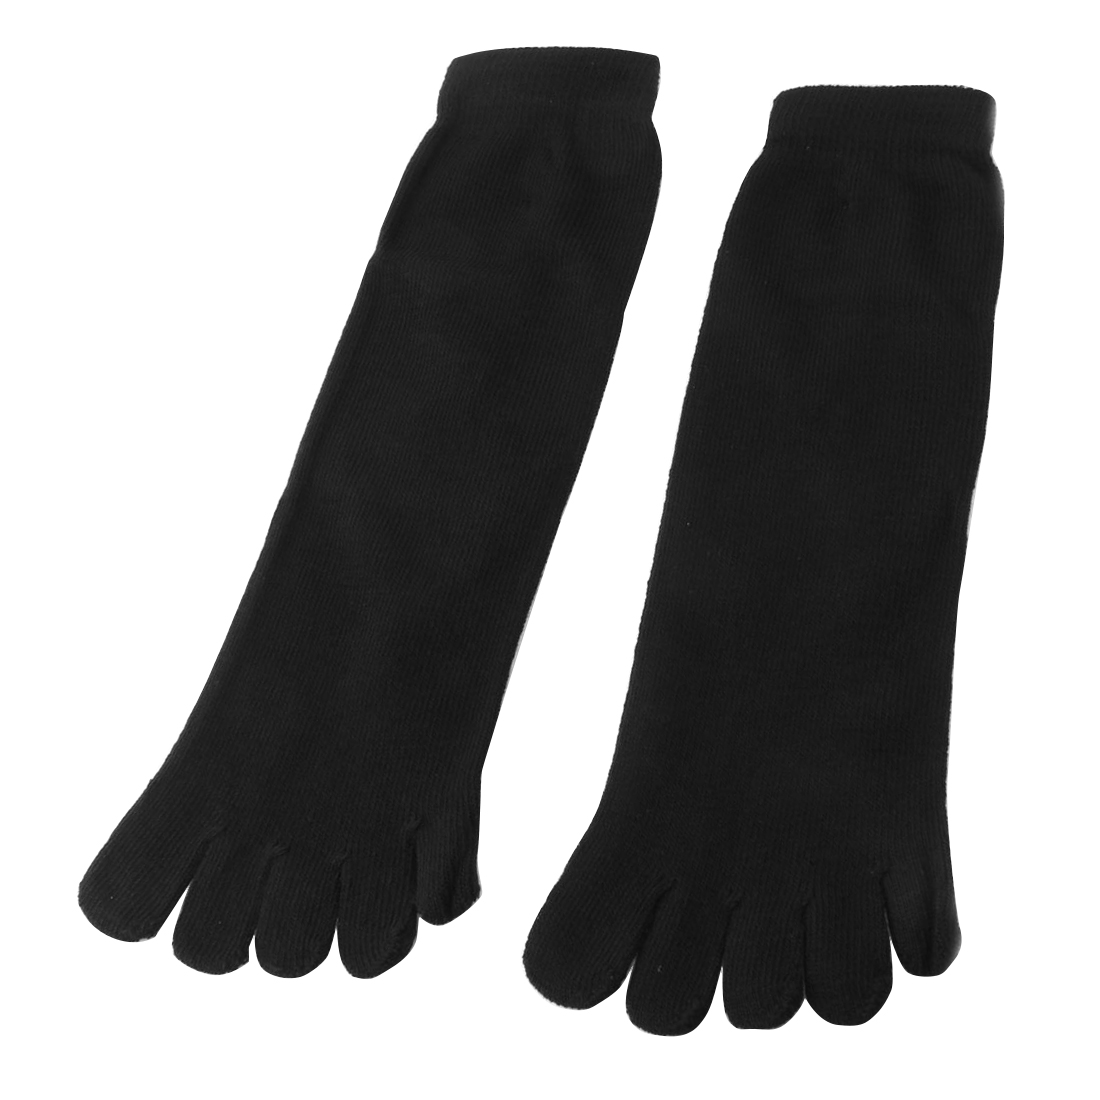 Black Cotton Blends Stretch Five Fingers Feet Toe Socks Pair for Man Woman